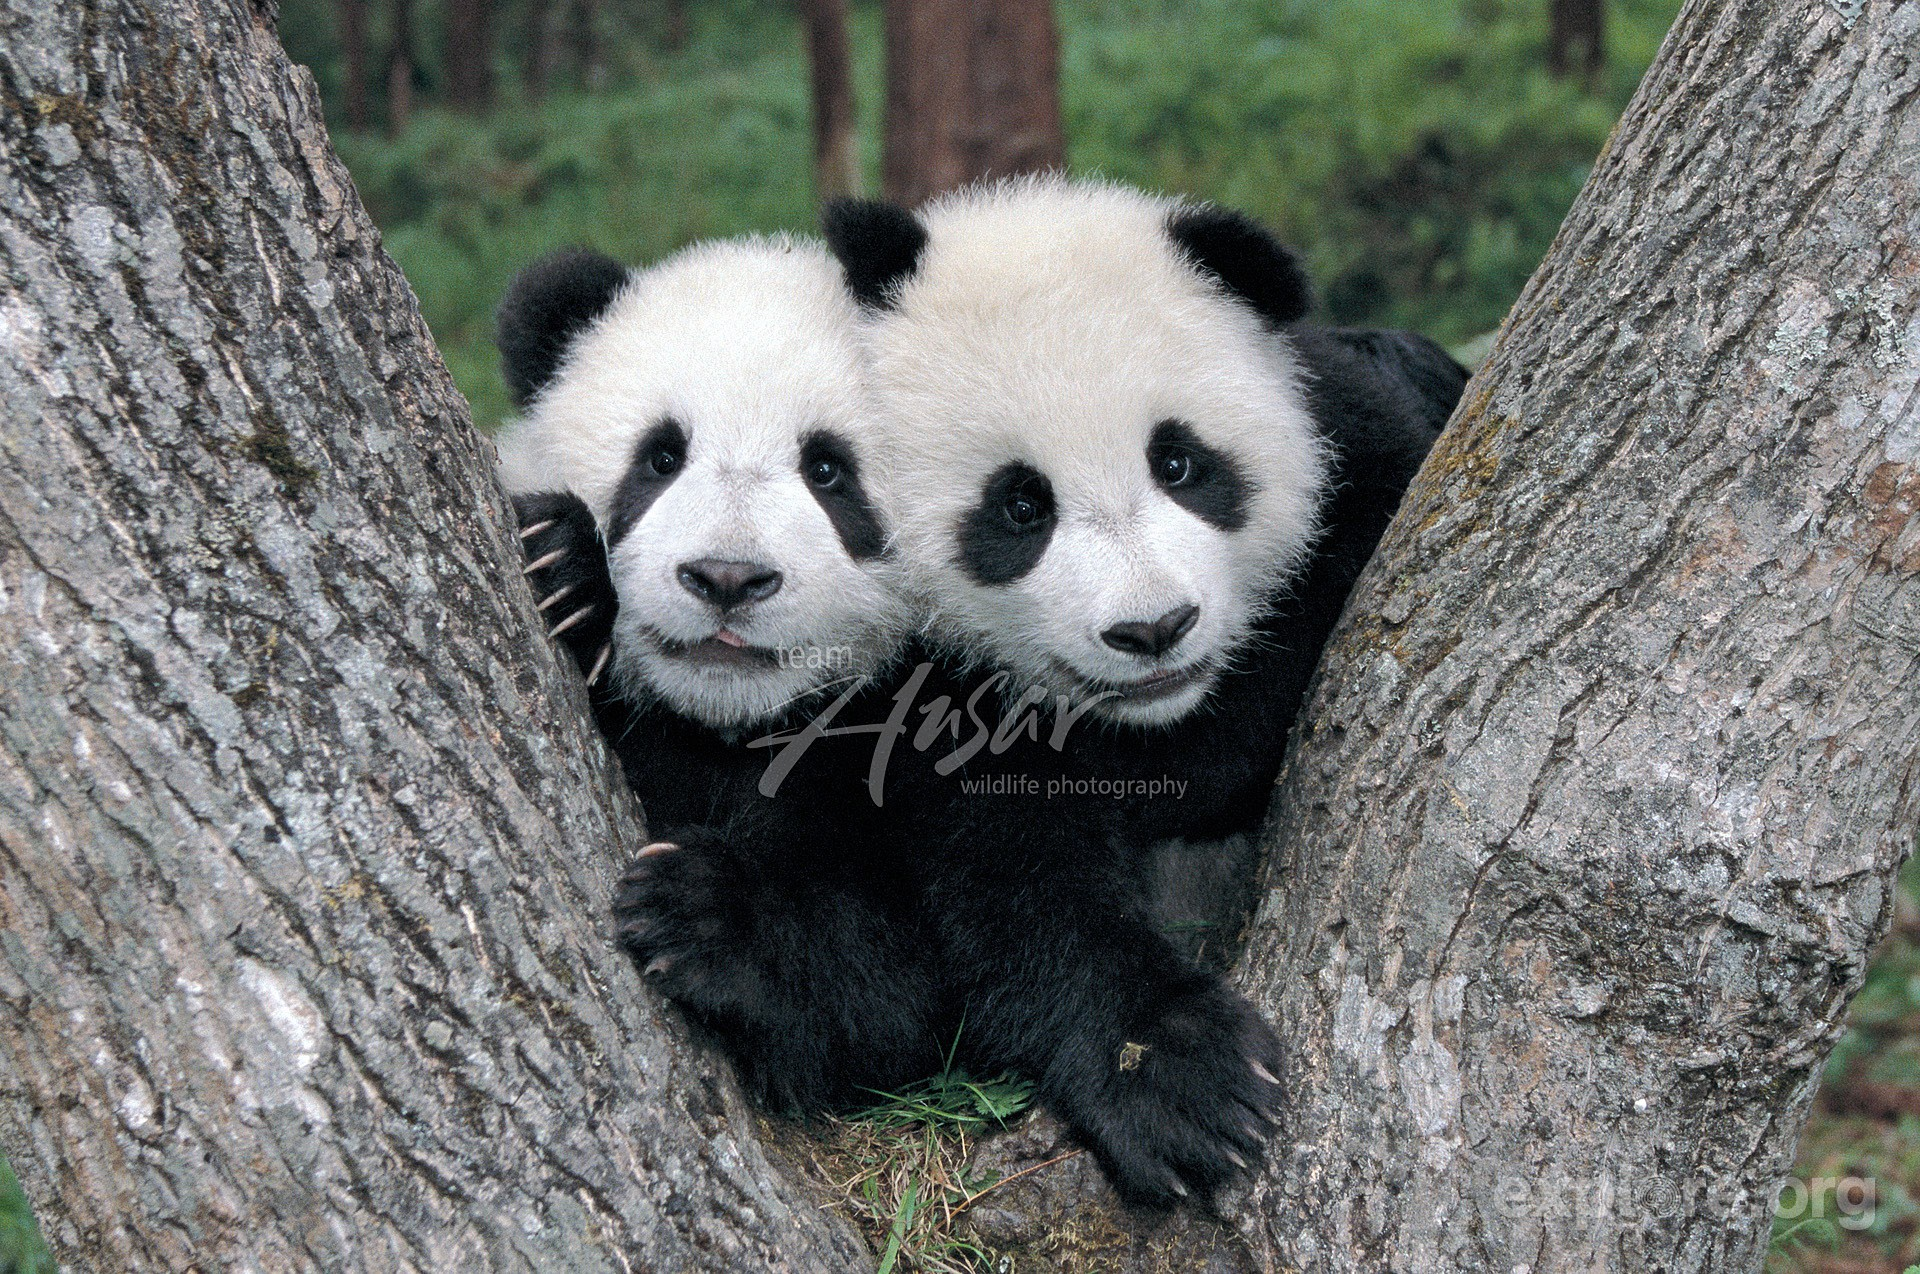 twin-panda-cubs-playing-in-the-fork-of-a-tree-w.jpg